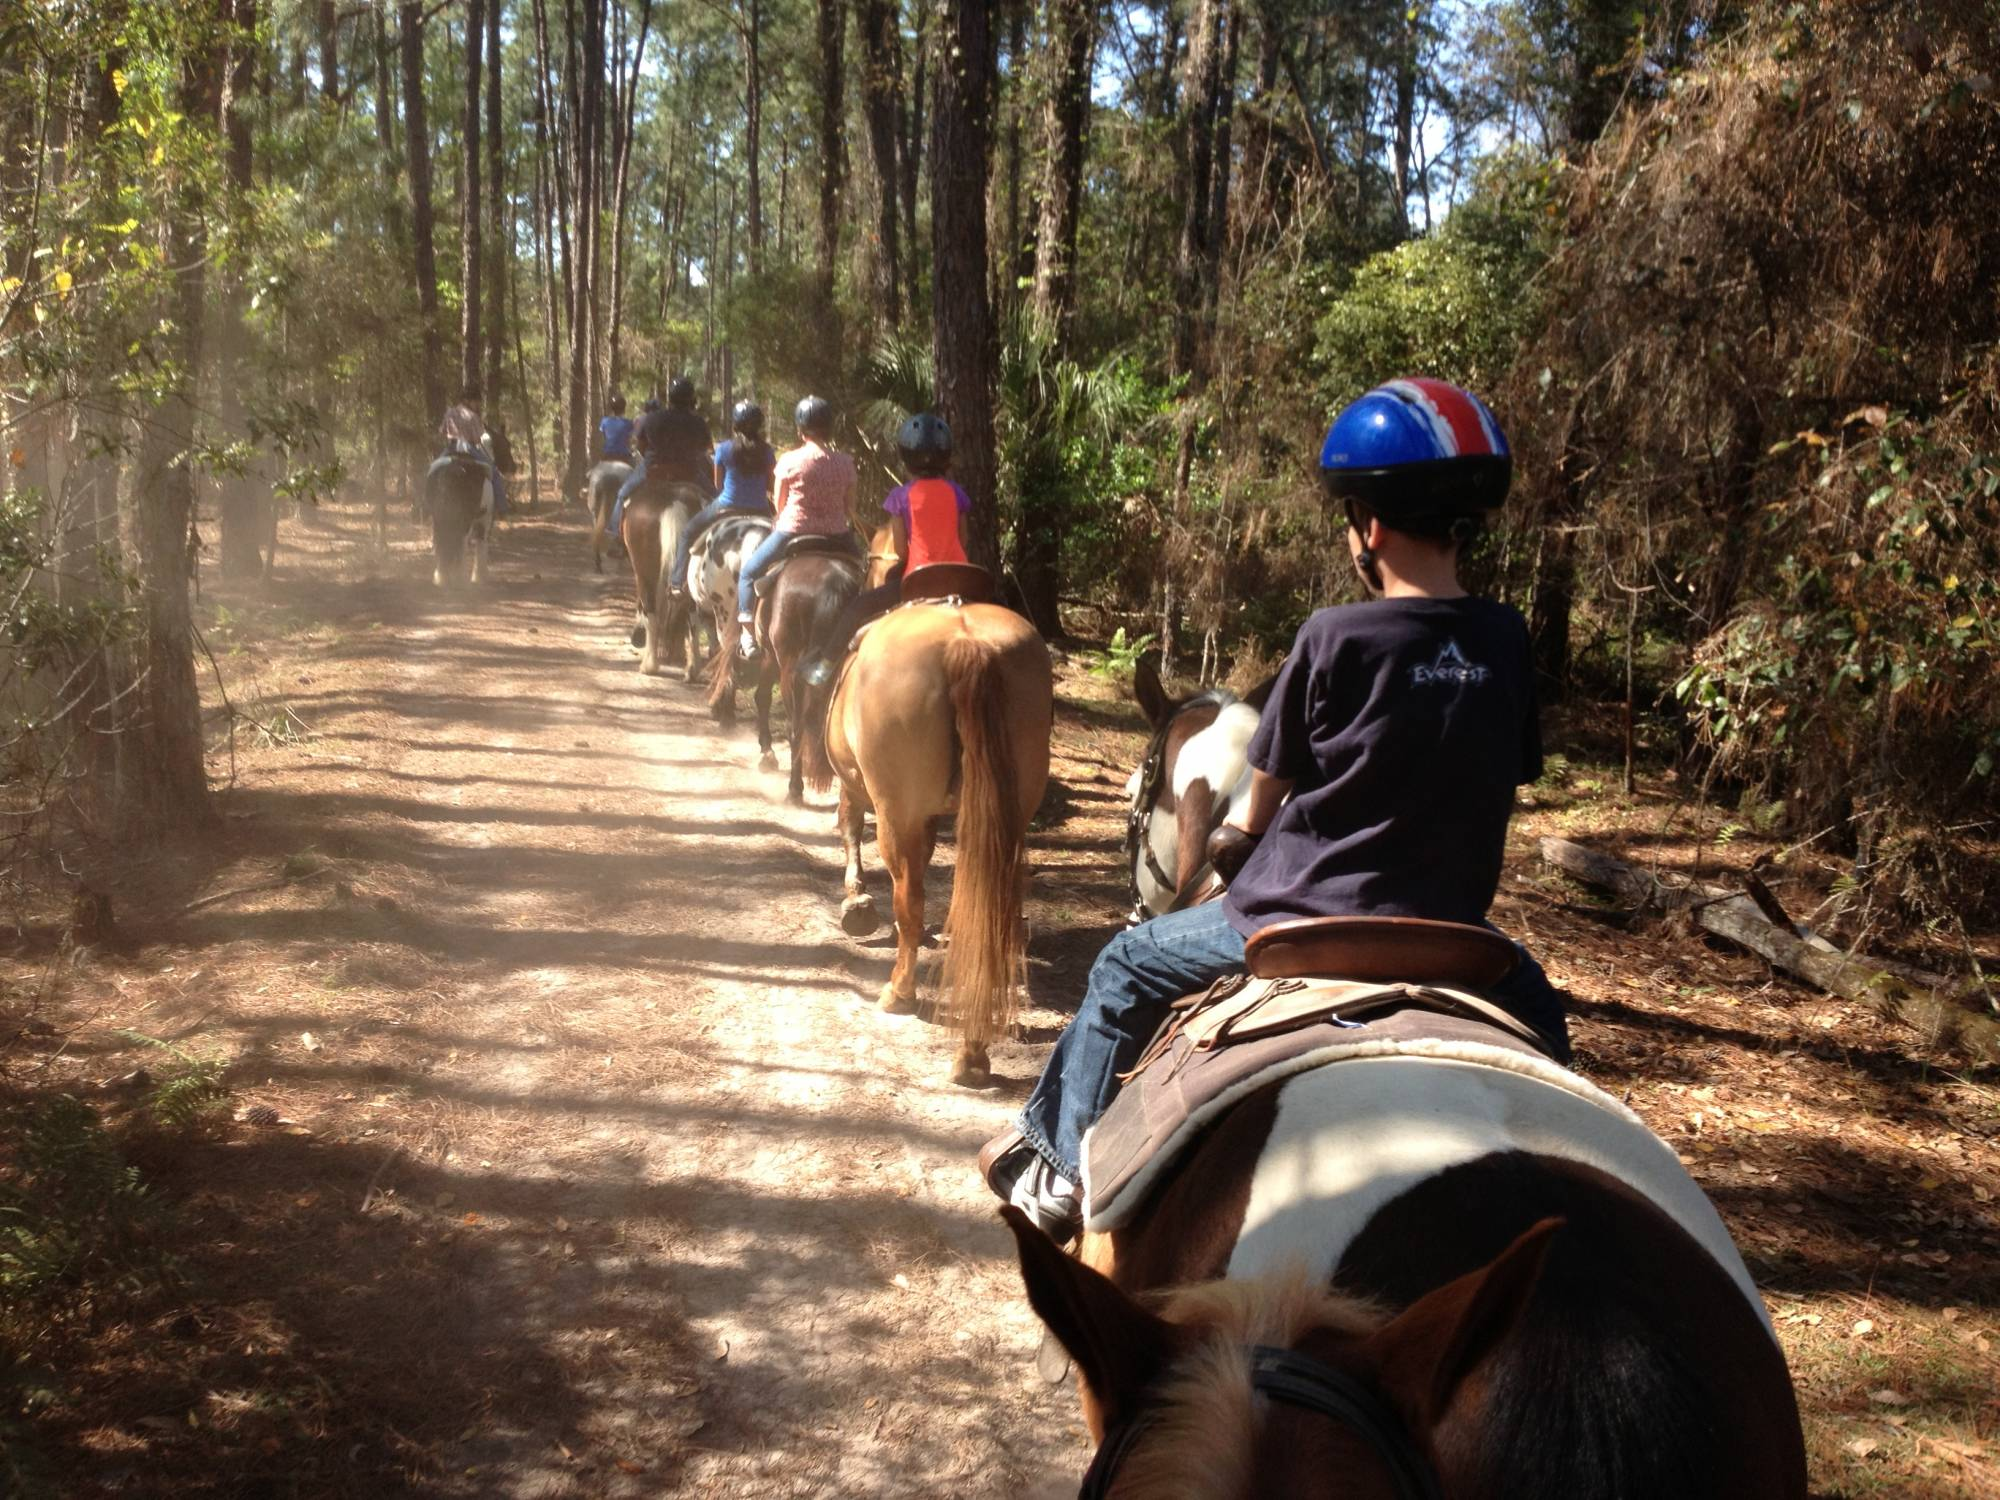 Explore Fort Wilderness from Horse-back with a Trail Ride |PassPorter.com